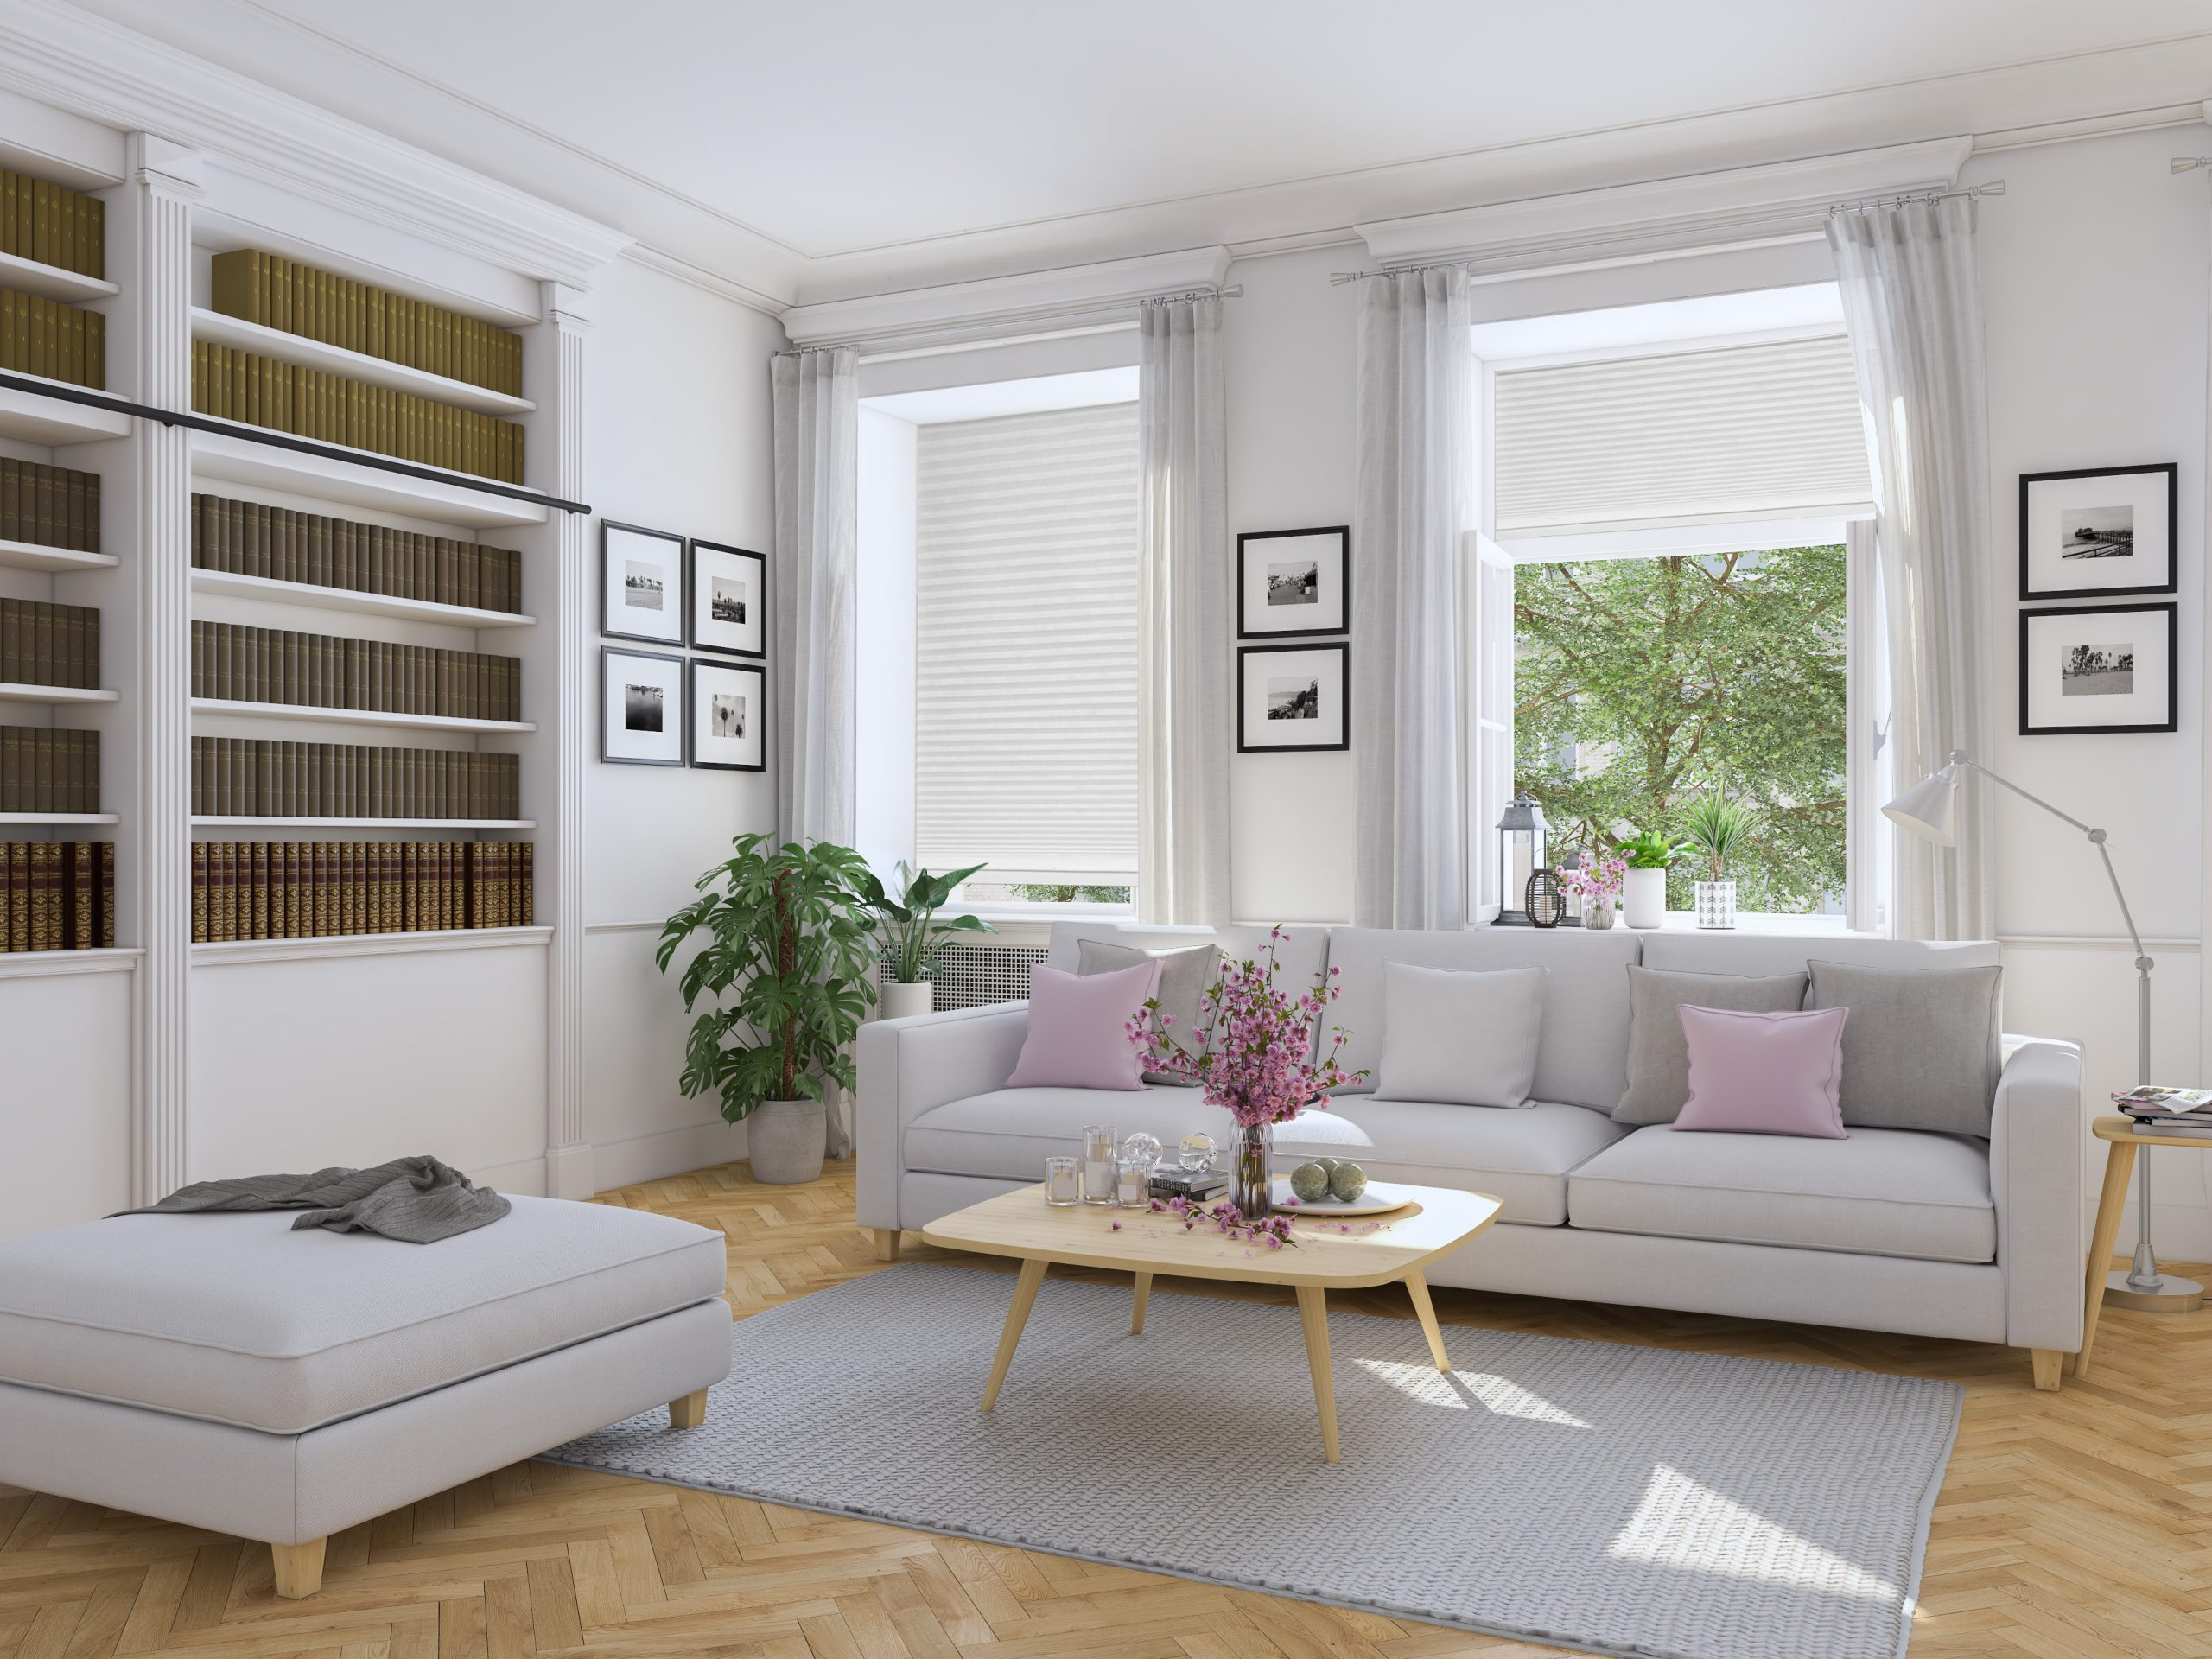 Keep Your Home Cool with Cellular Shades